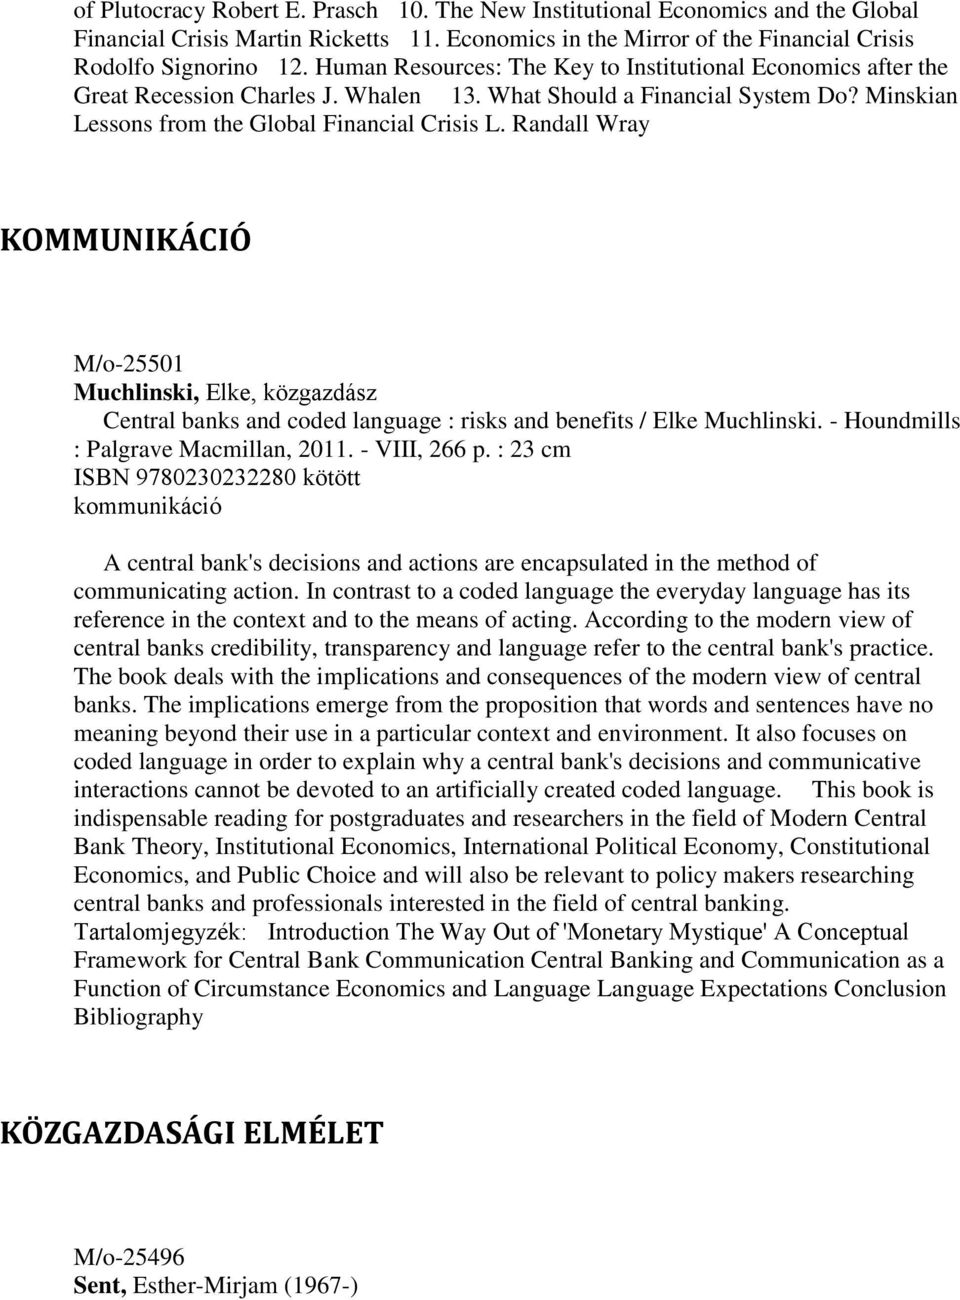 Randall Wray KOMMUNIKÁCIÓ M/o-25501 Muchlinski, Elke, közgazdász Central banks and coded language : risks and benefits / Elke Muchlinski. - Houndmills : Palgrave Macmillan, 2011. - VIII, 266 p.